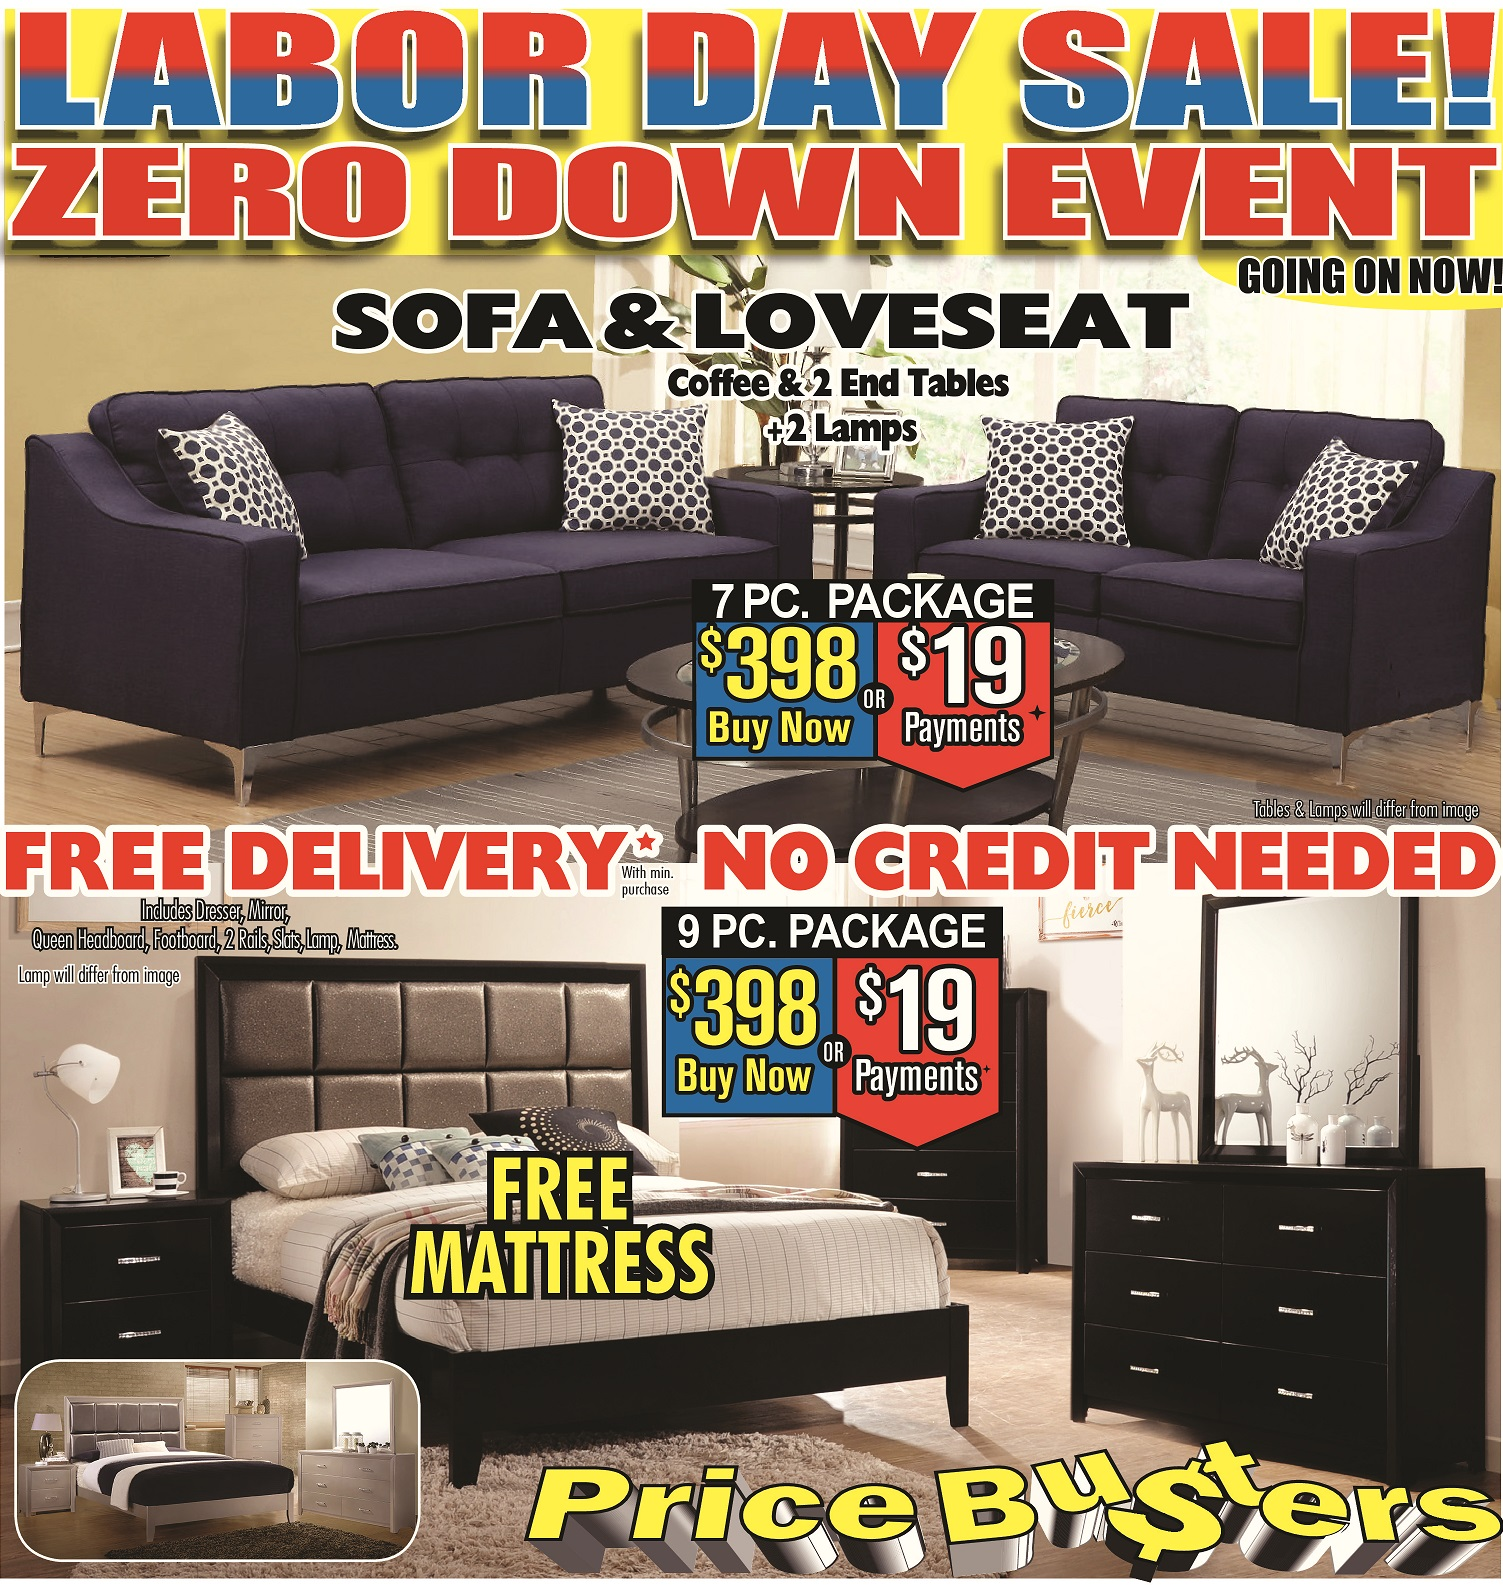 Furniture Store Cheap Prices: Price Busters Discount Furniture, Essex Maryland (MD